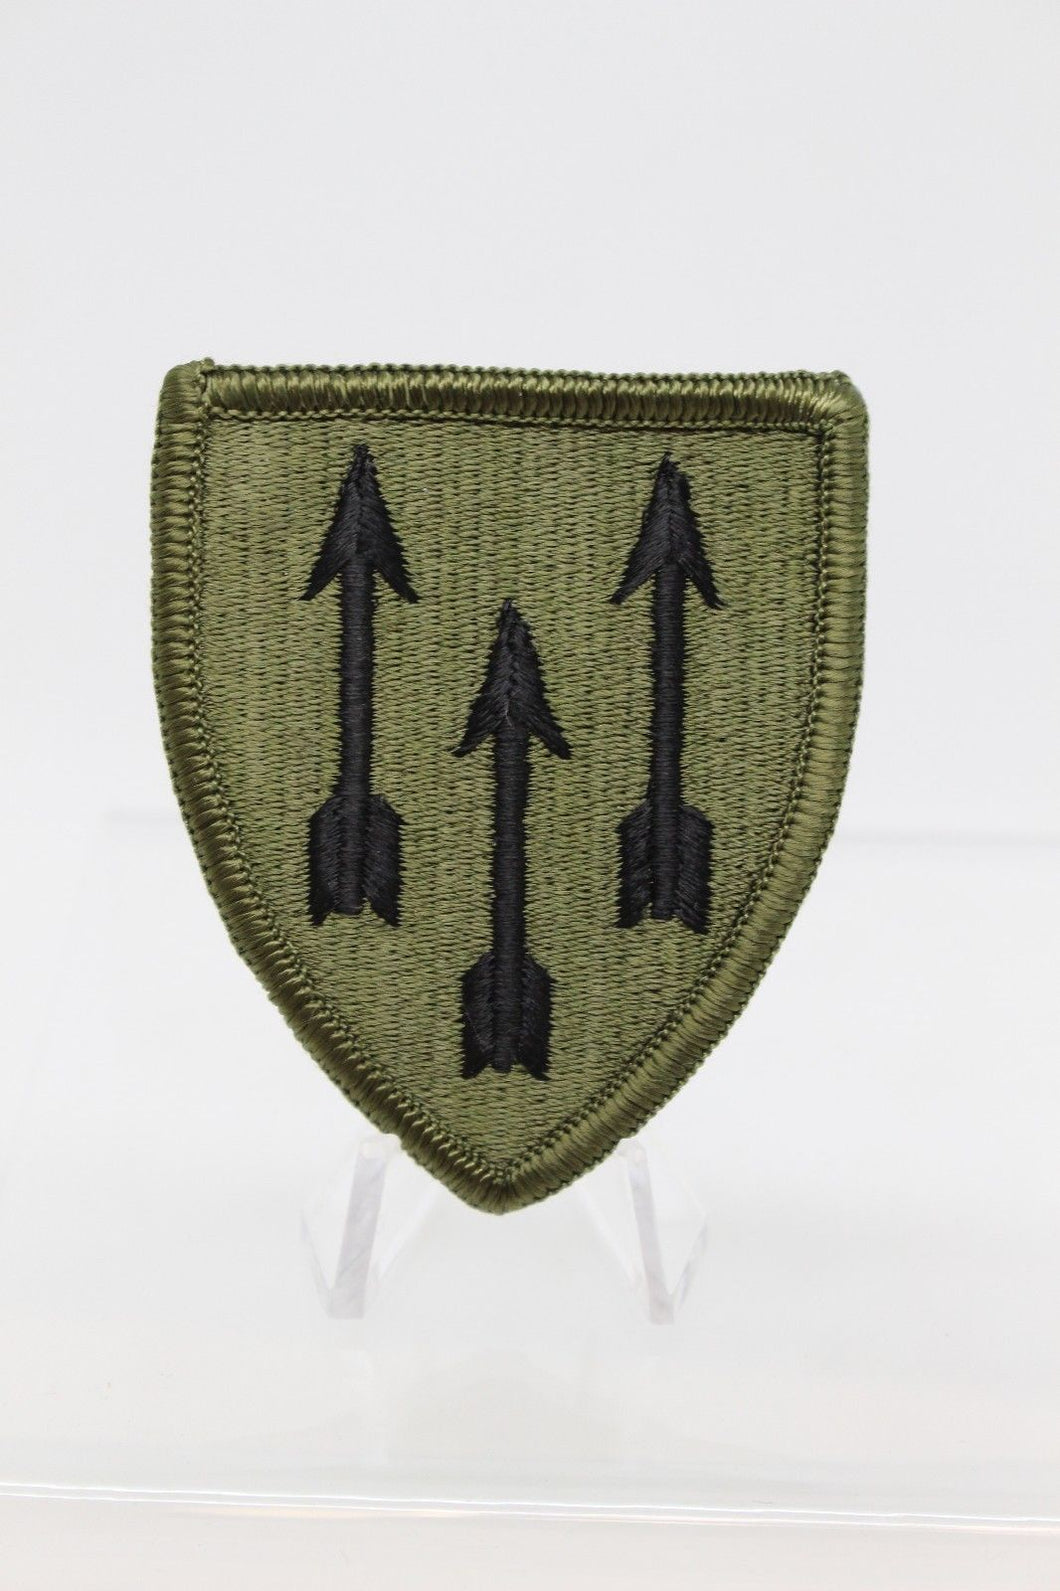 Armed Forces Defense Special Weapons Patch, Sew On, New